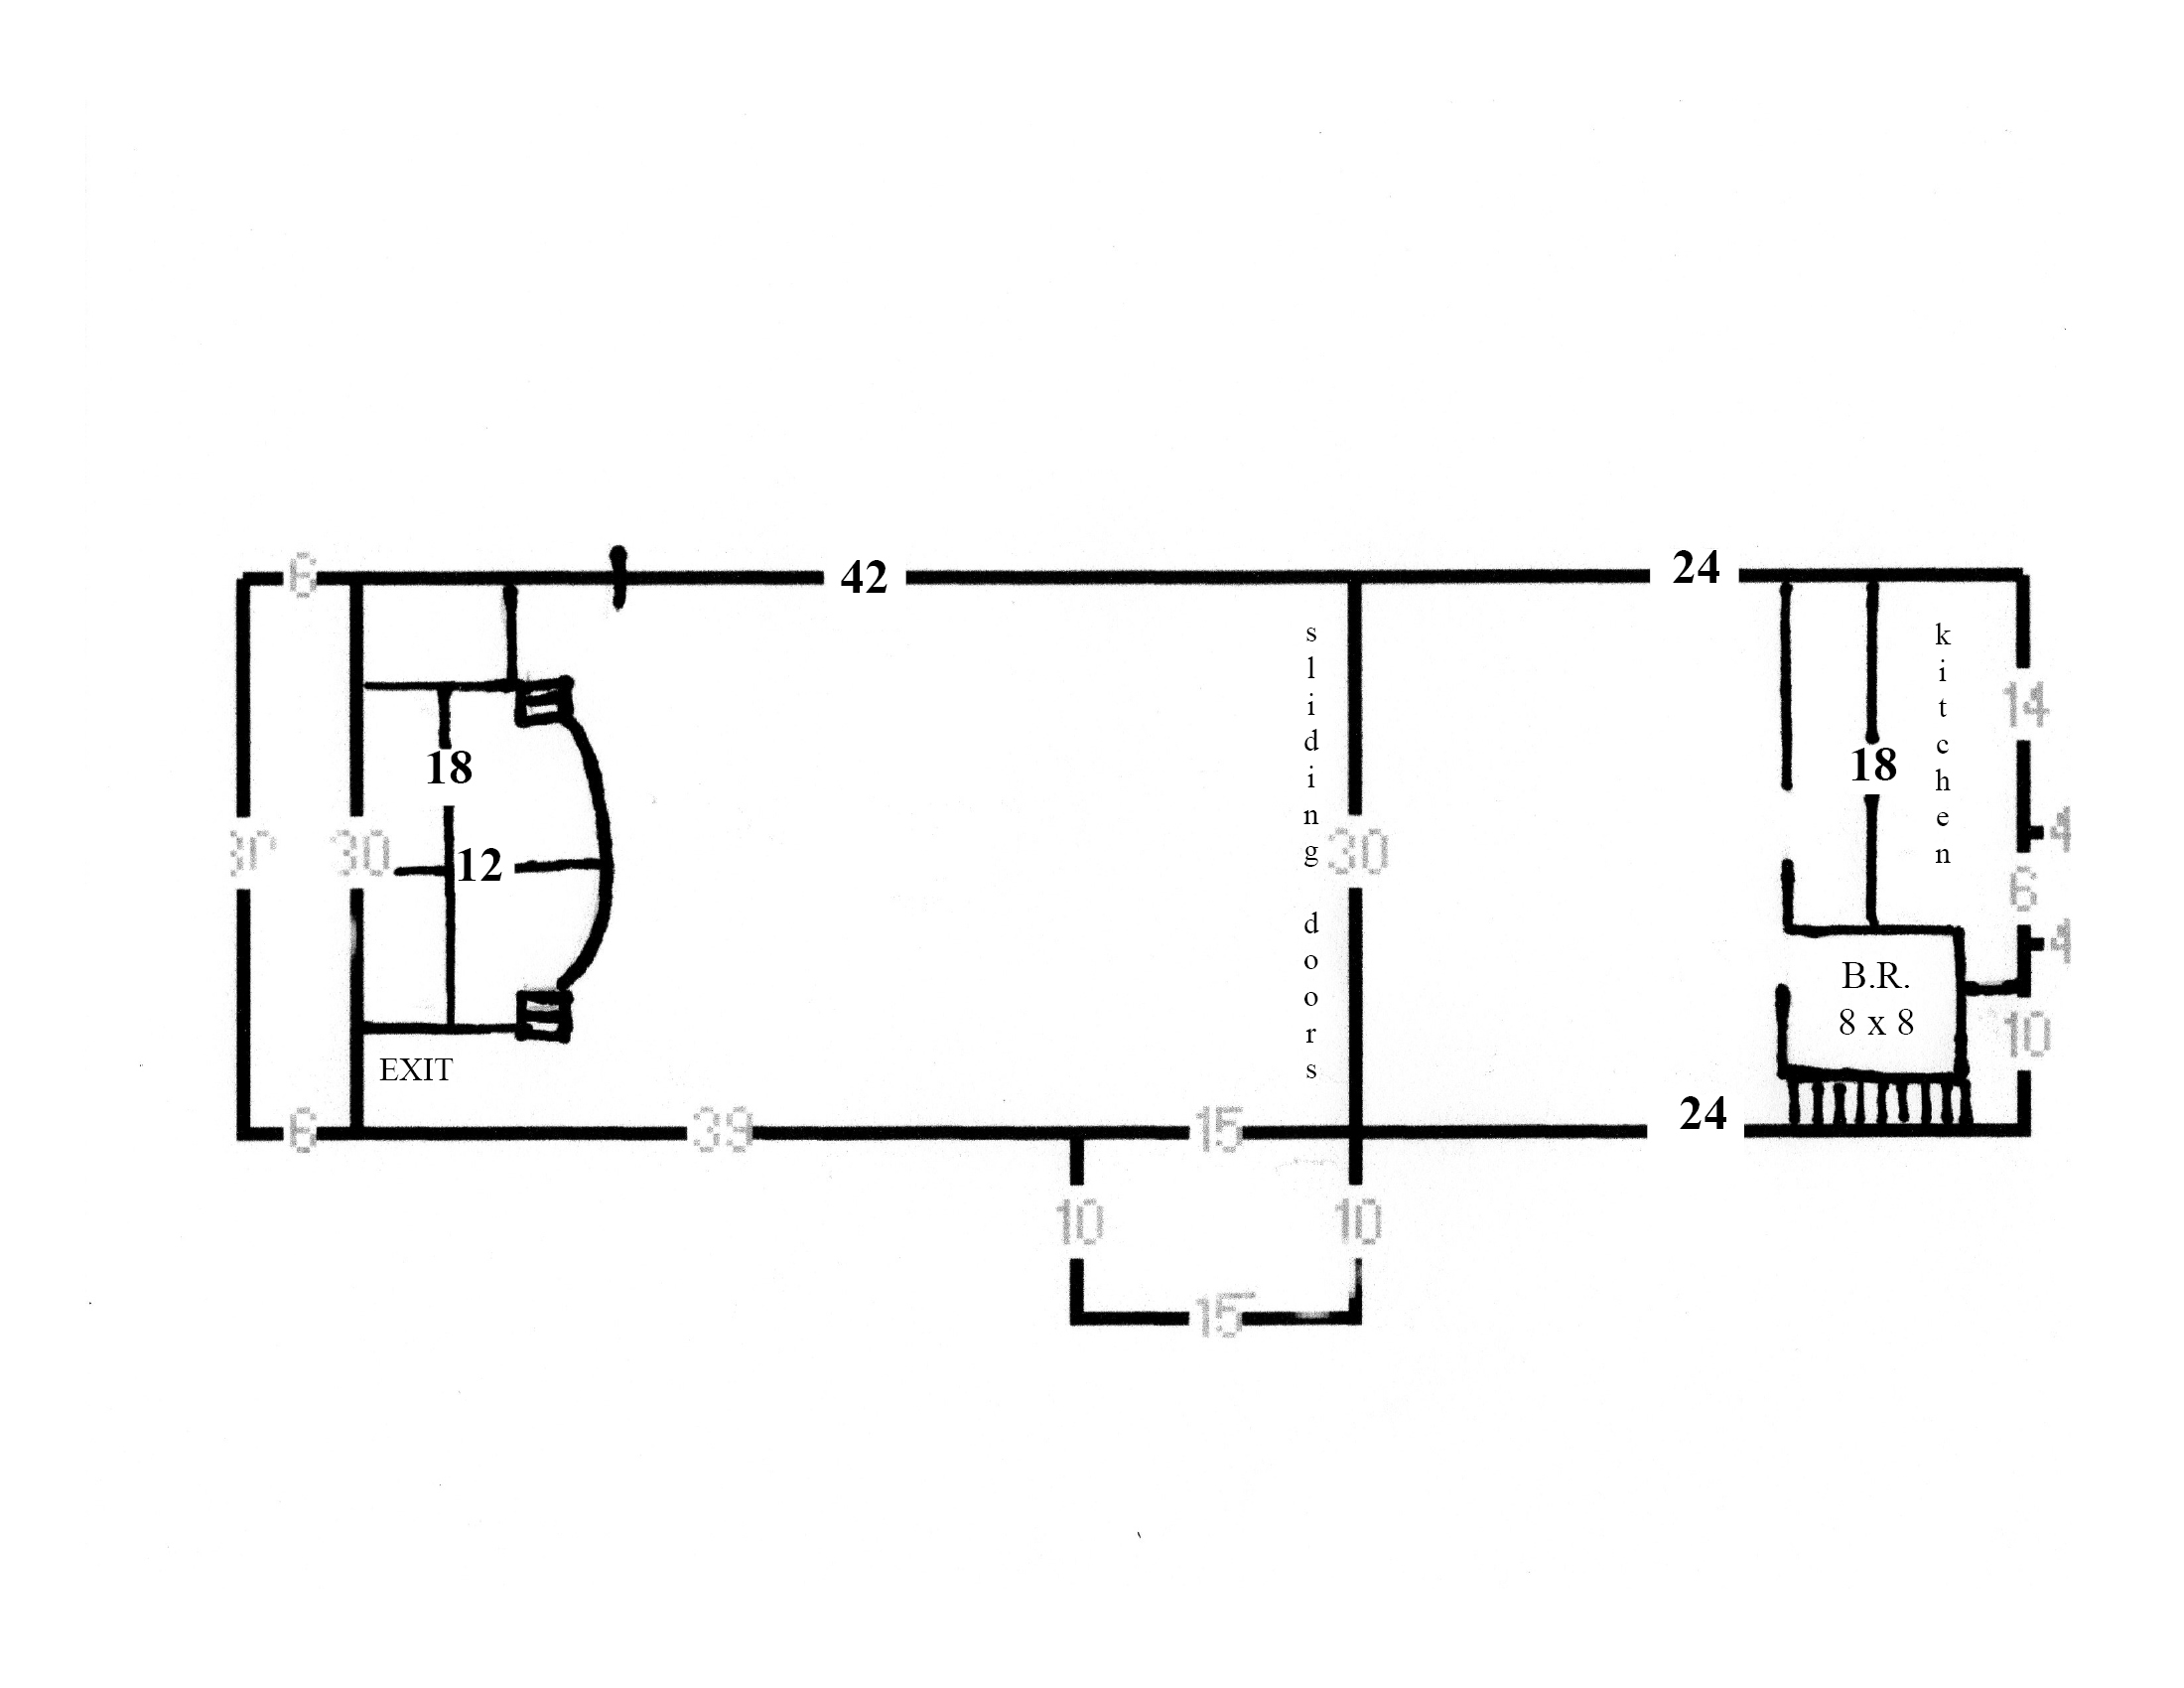 SIAA_Floor_Plan.jpg